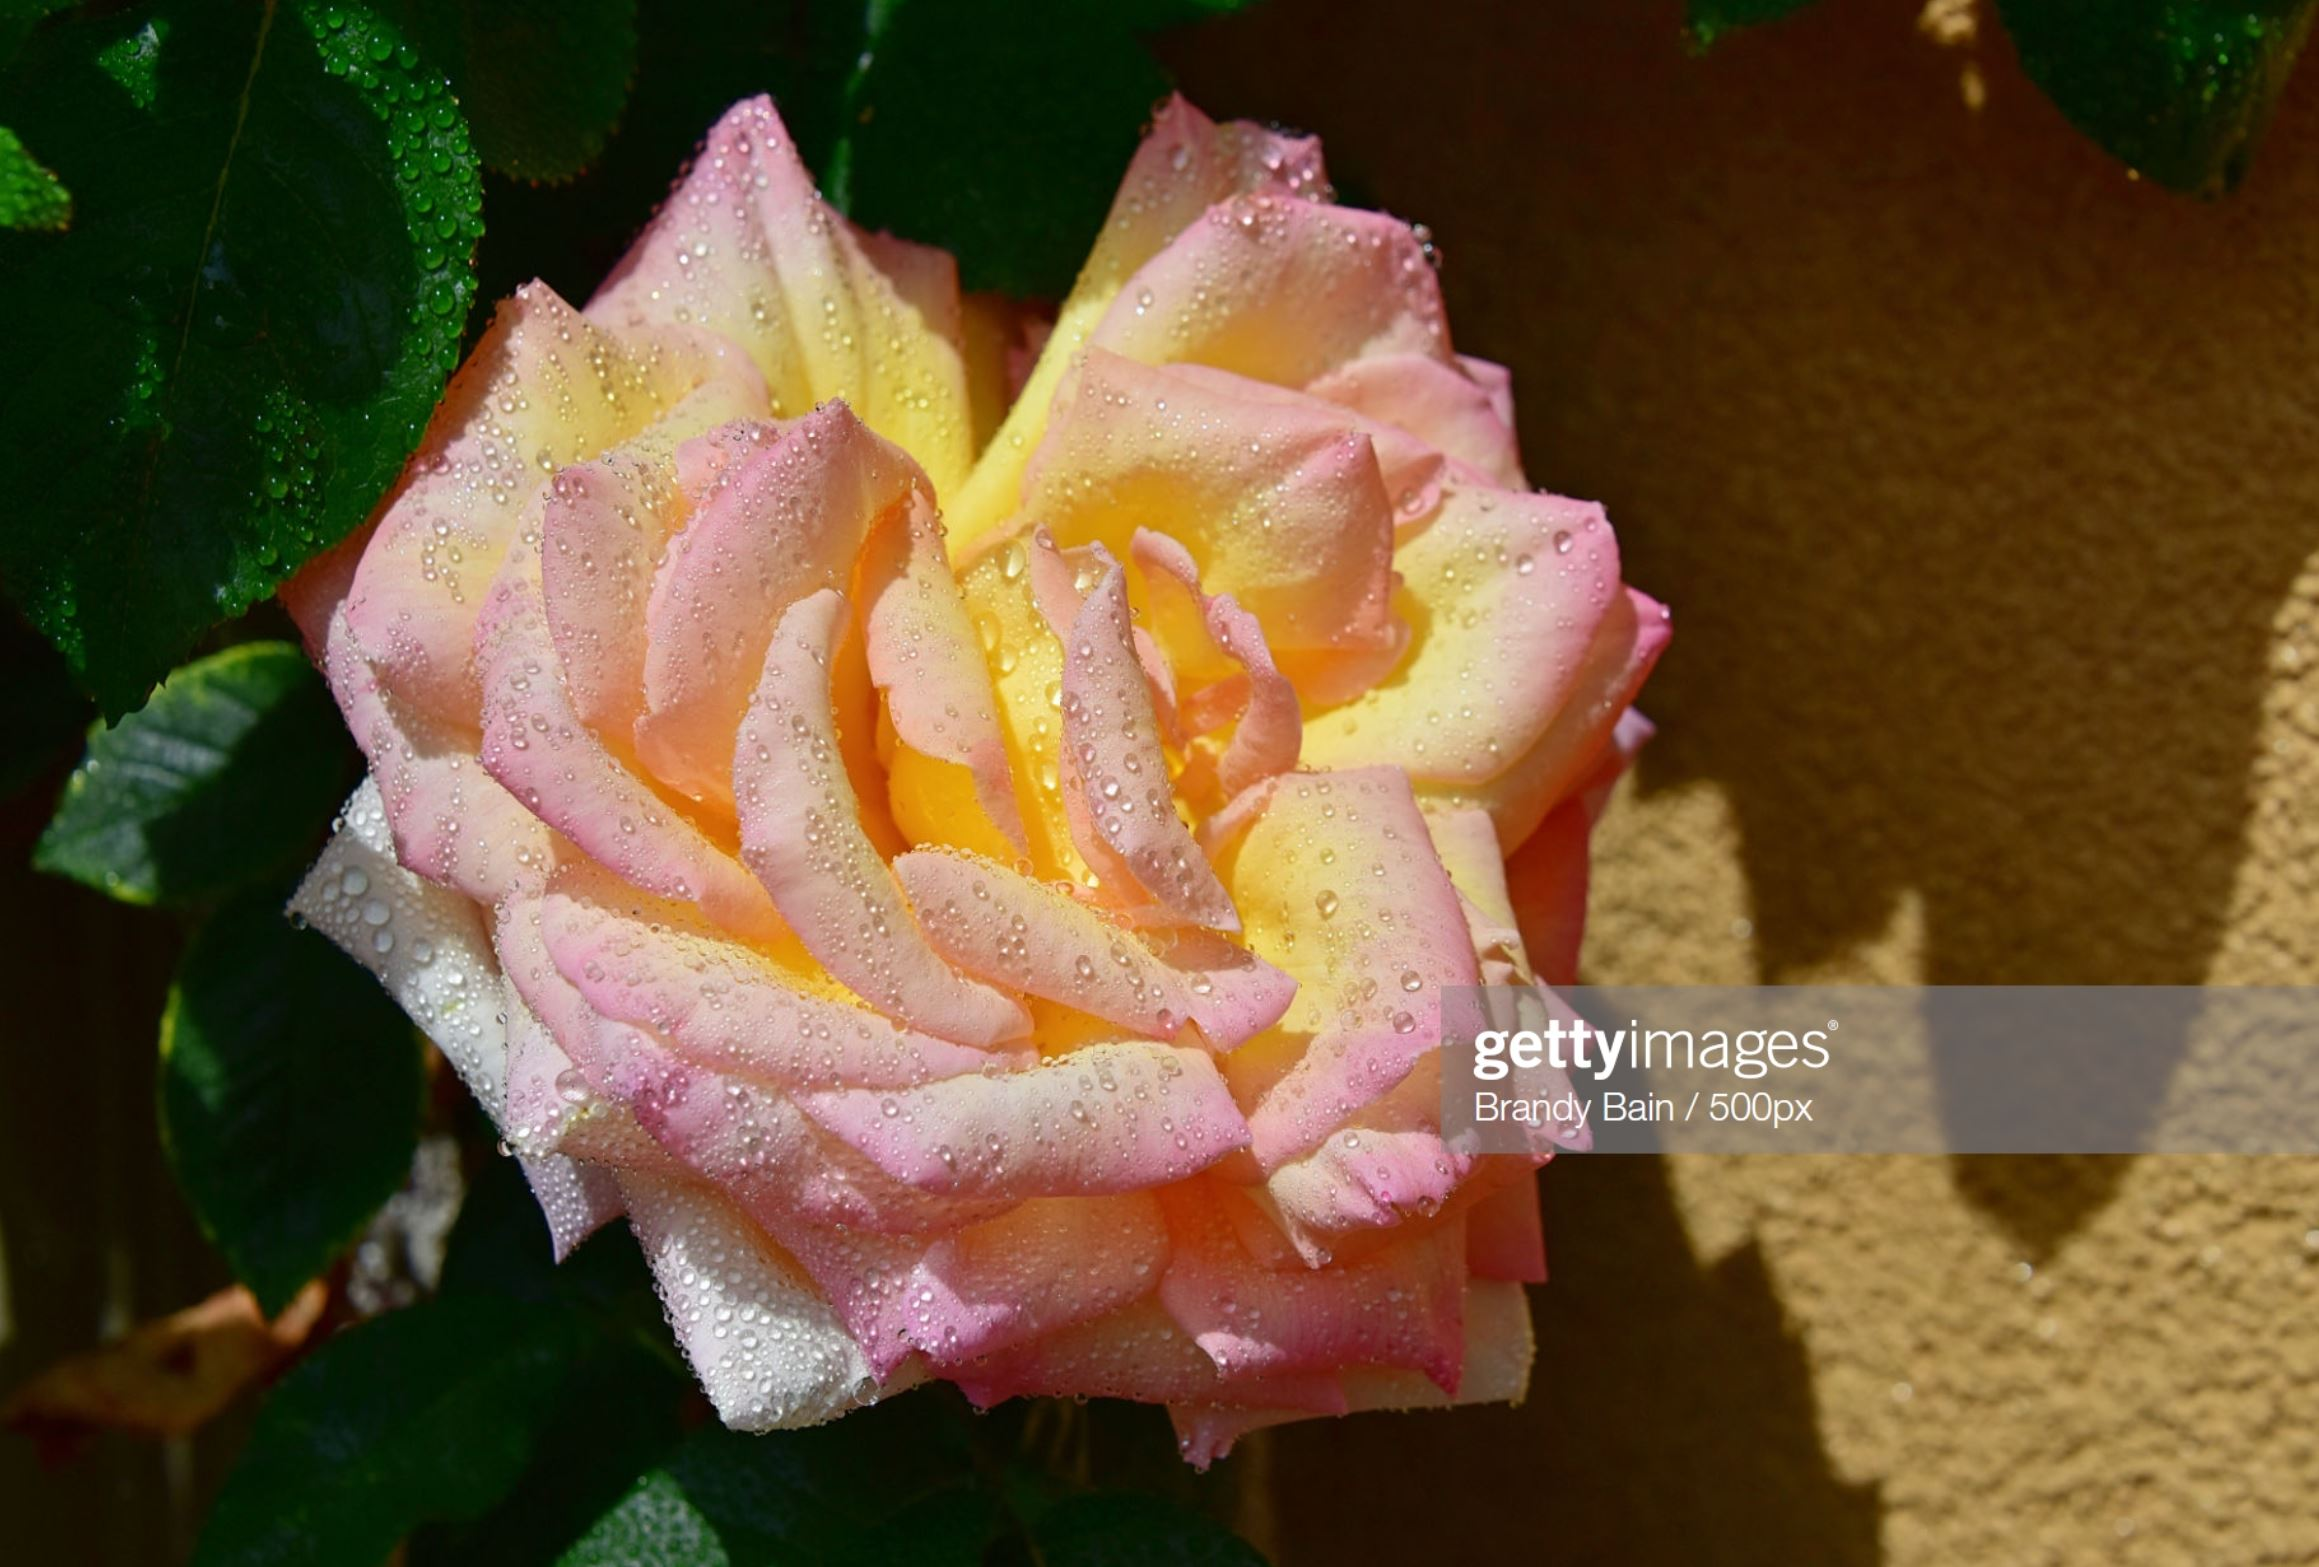 rose photo on Getty Images by Brandy Saturley Bain